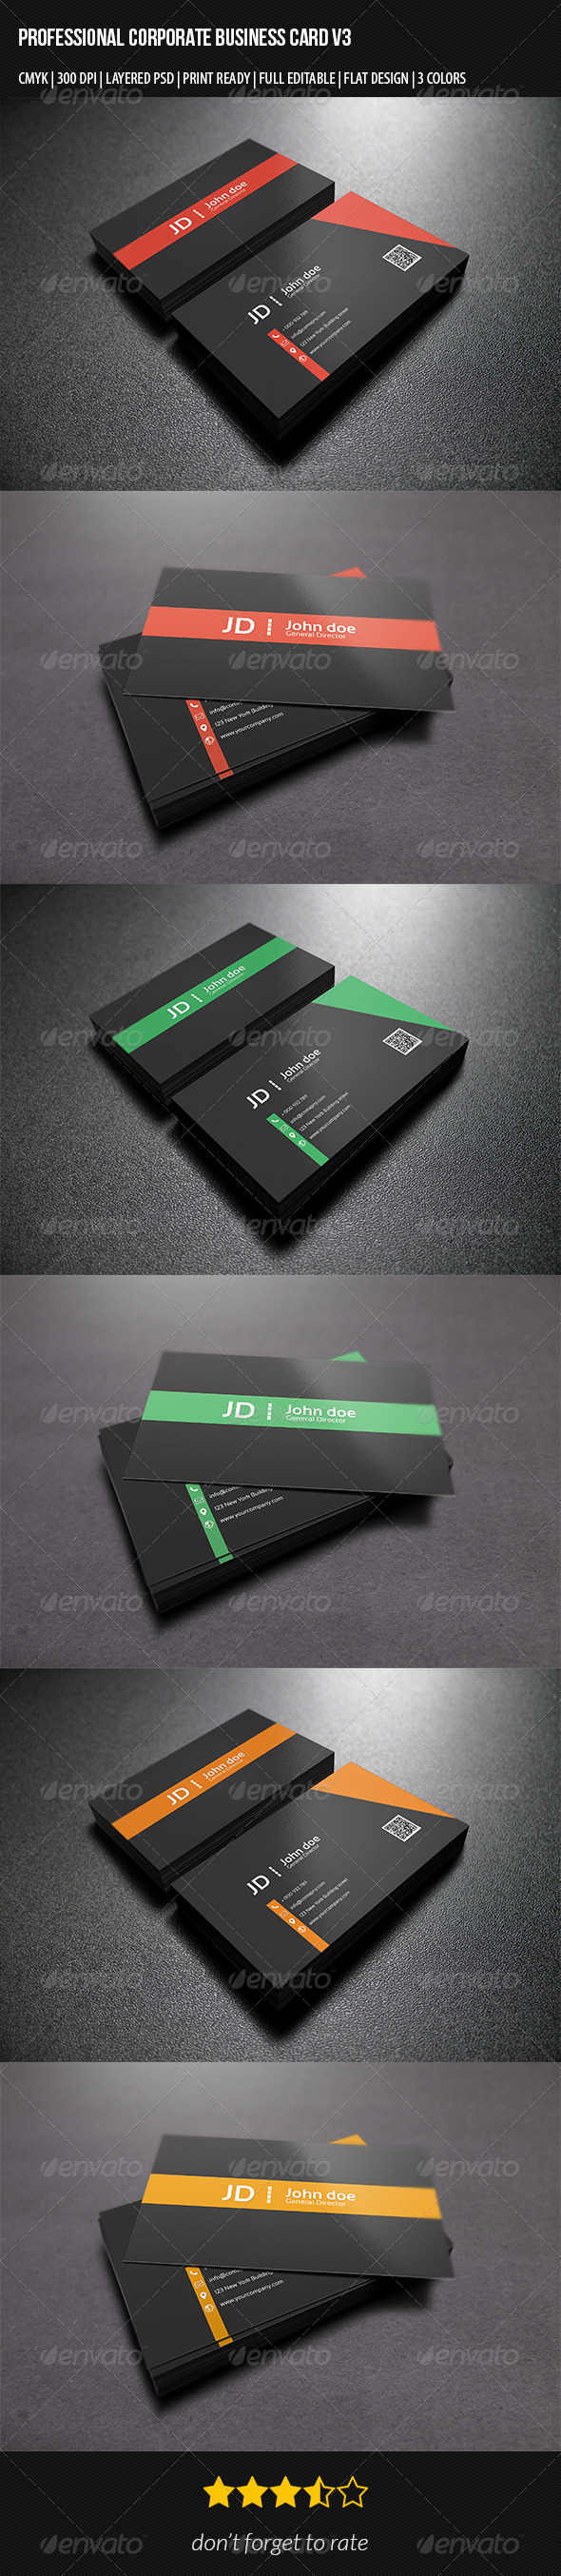 Professional Corporate Business Card V3 - Corporate Flyers